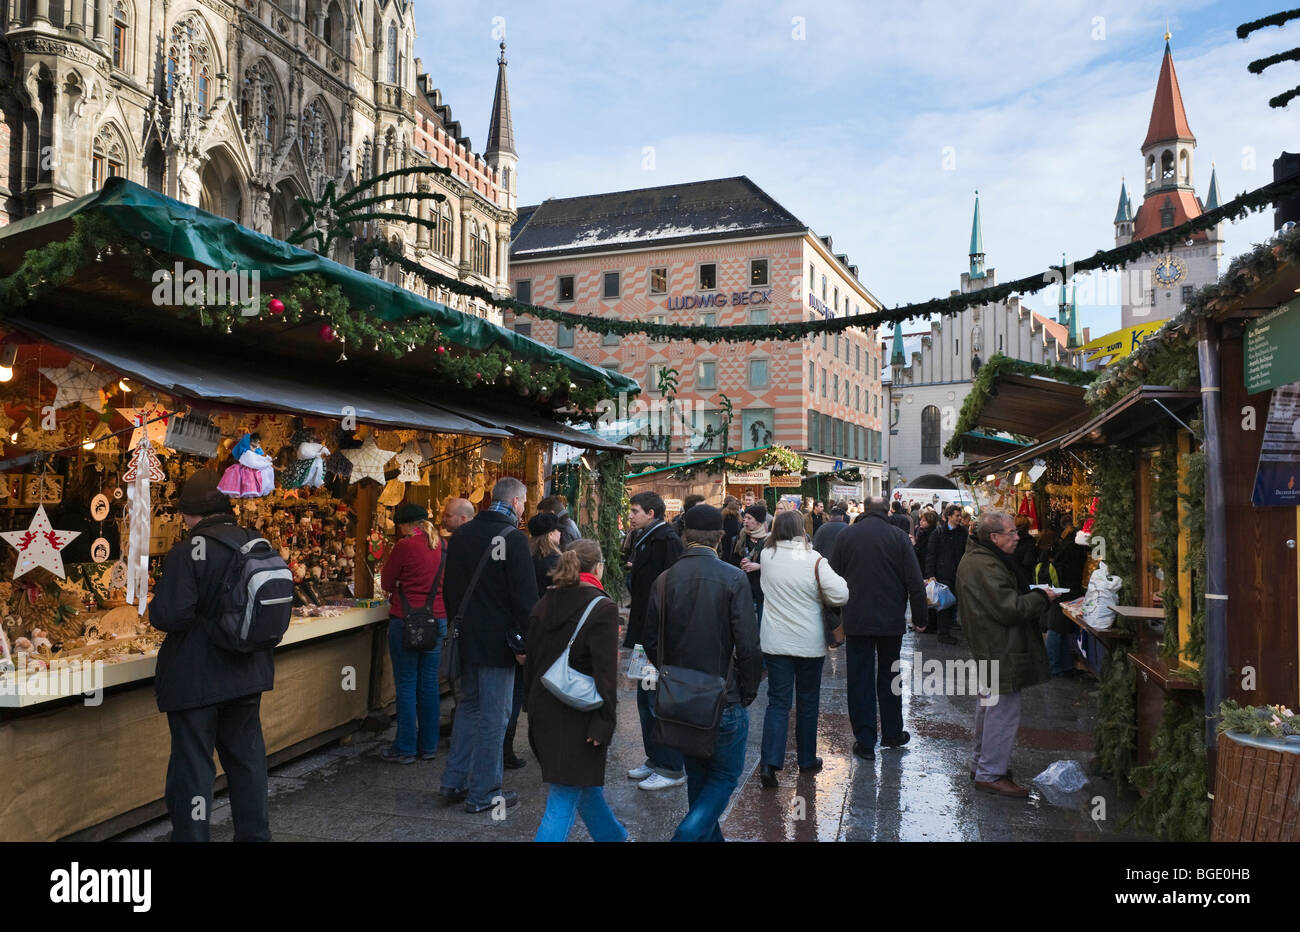 Christmas Market in Marienplatz with the New Town Hall to the left and the Old Town Hall behind, Munich, Germany - Stock Image